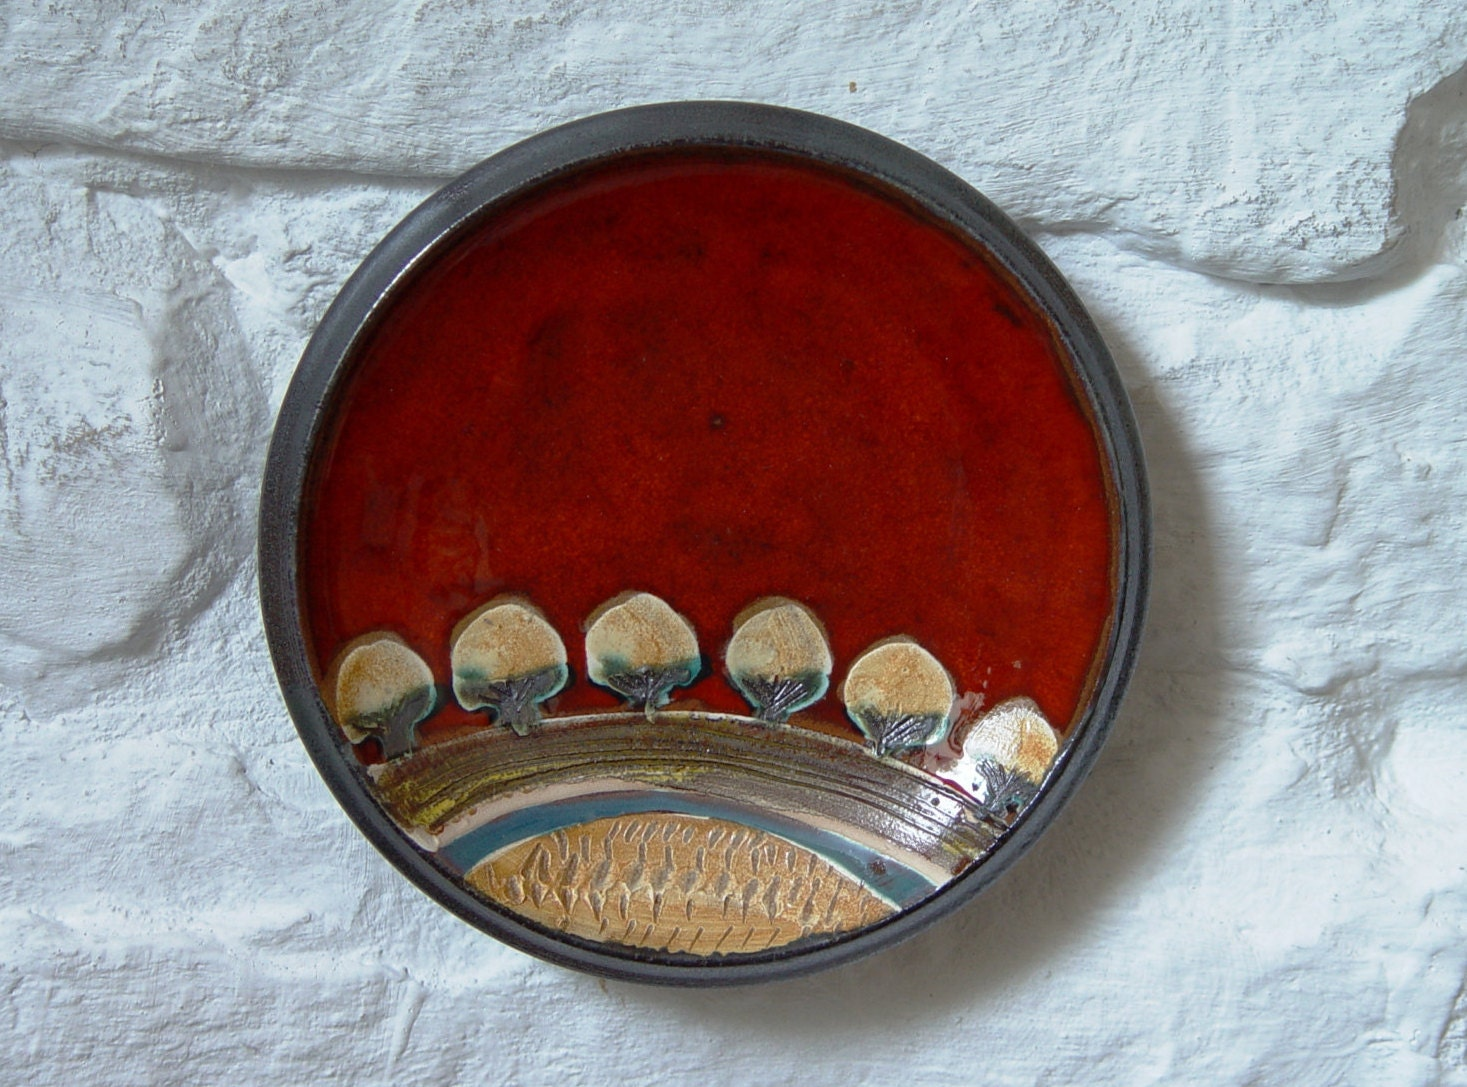 Wall Hanging Pottery Plate Kitchen Wall Decor Small Ceramic